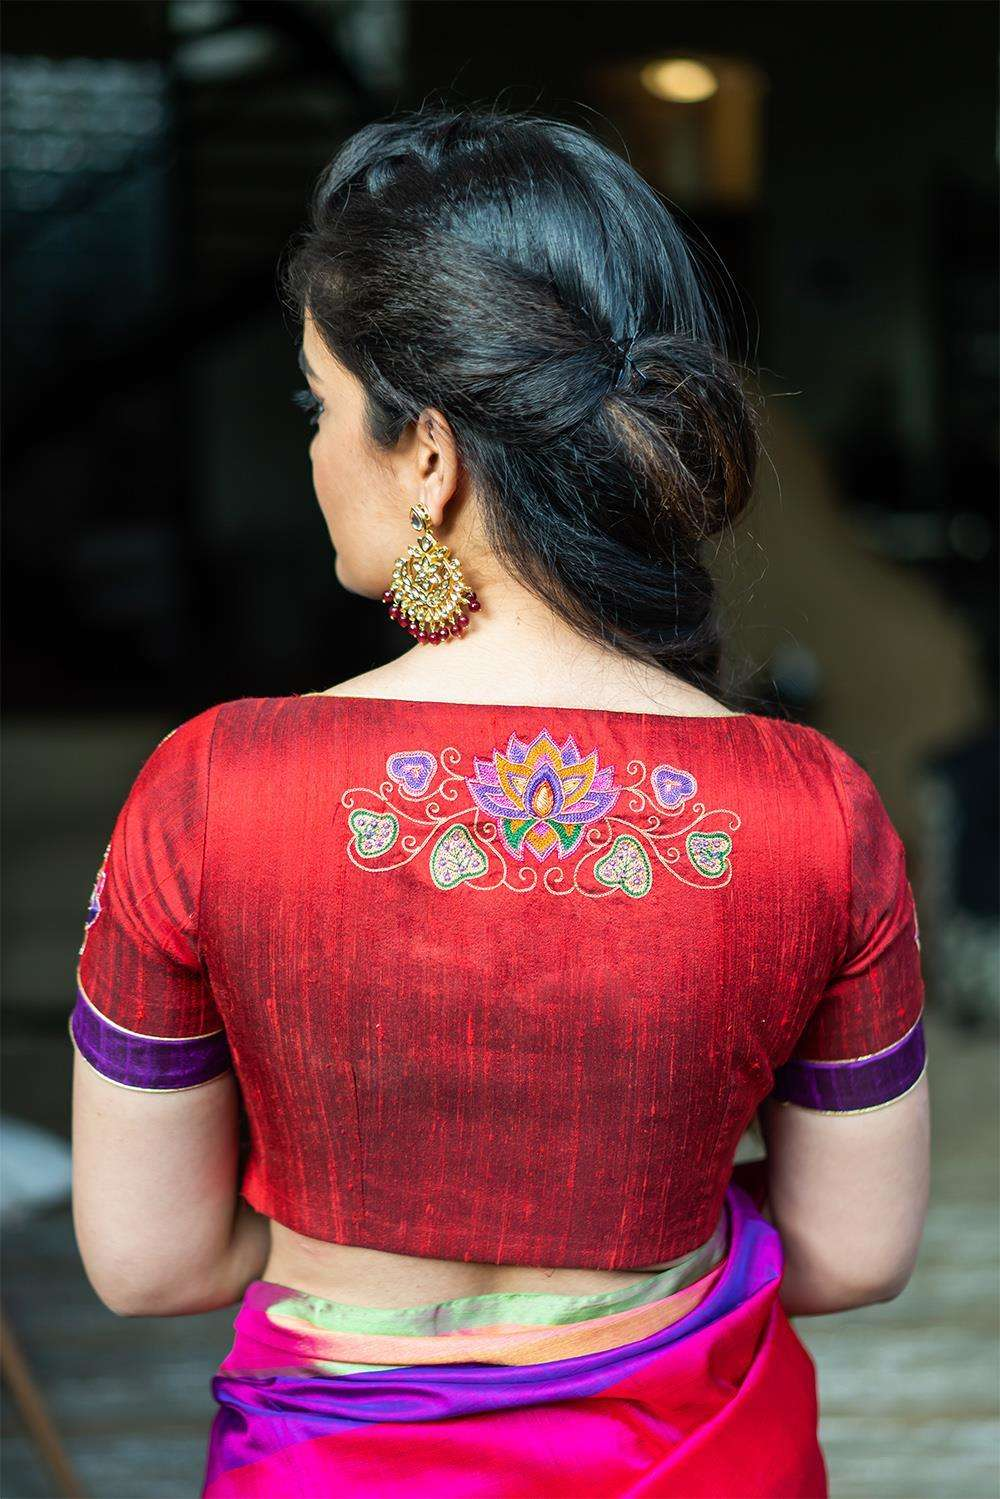 Rudrama Devi - Hand embroidered blouse